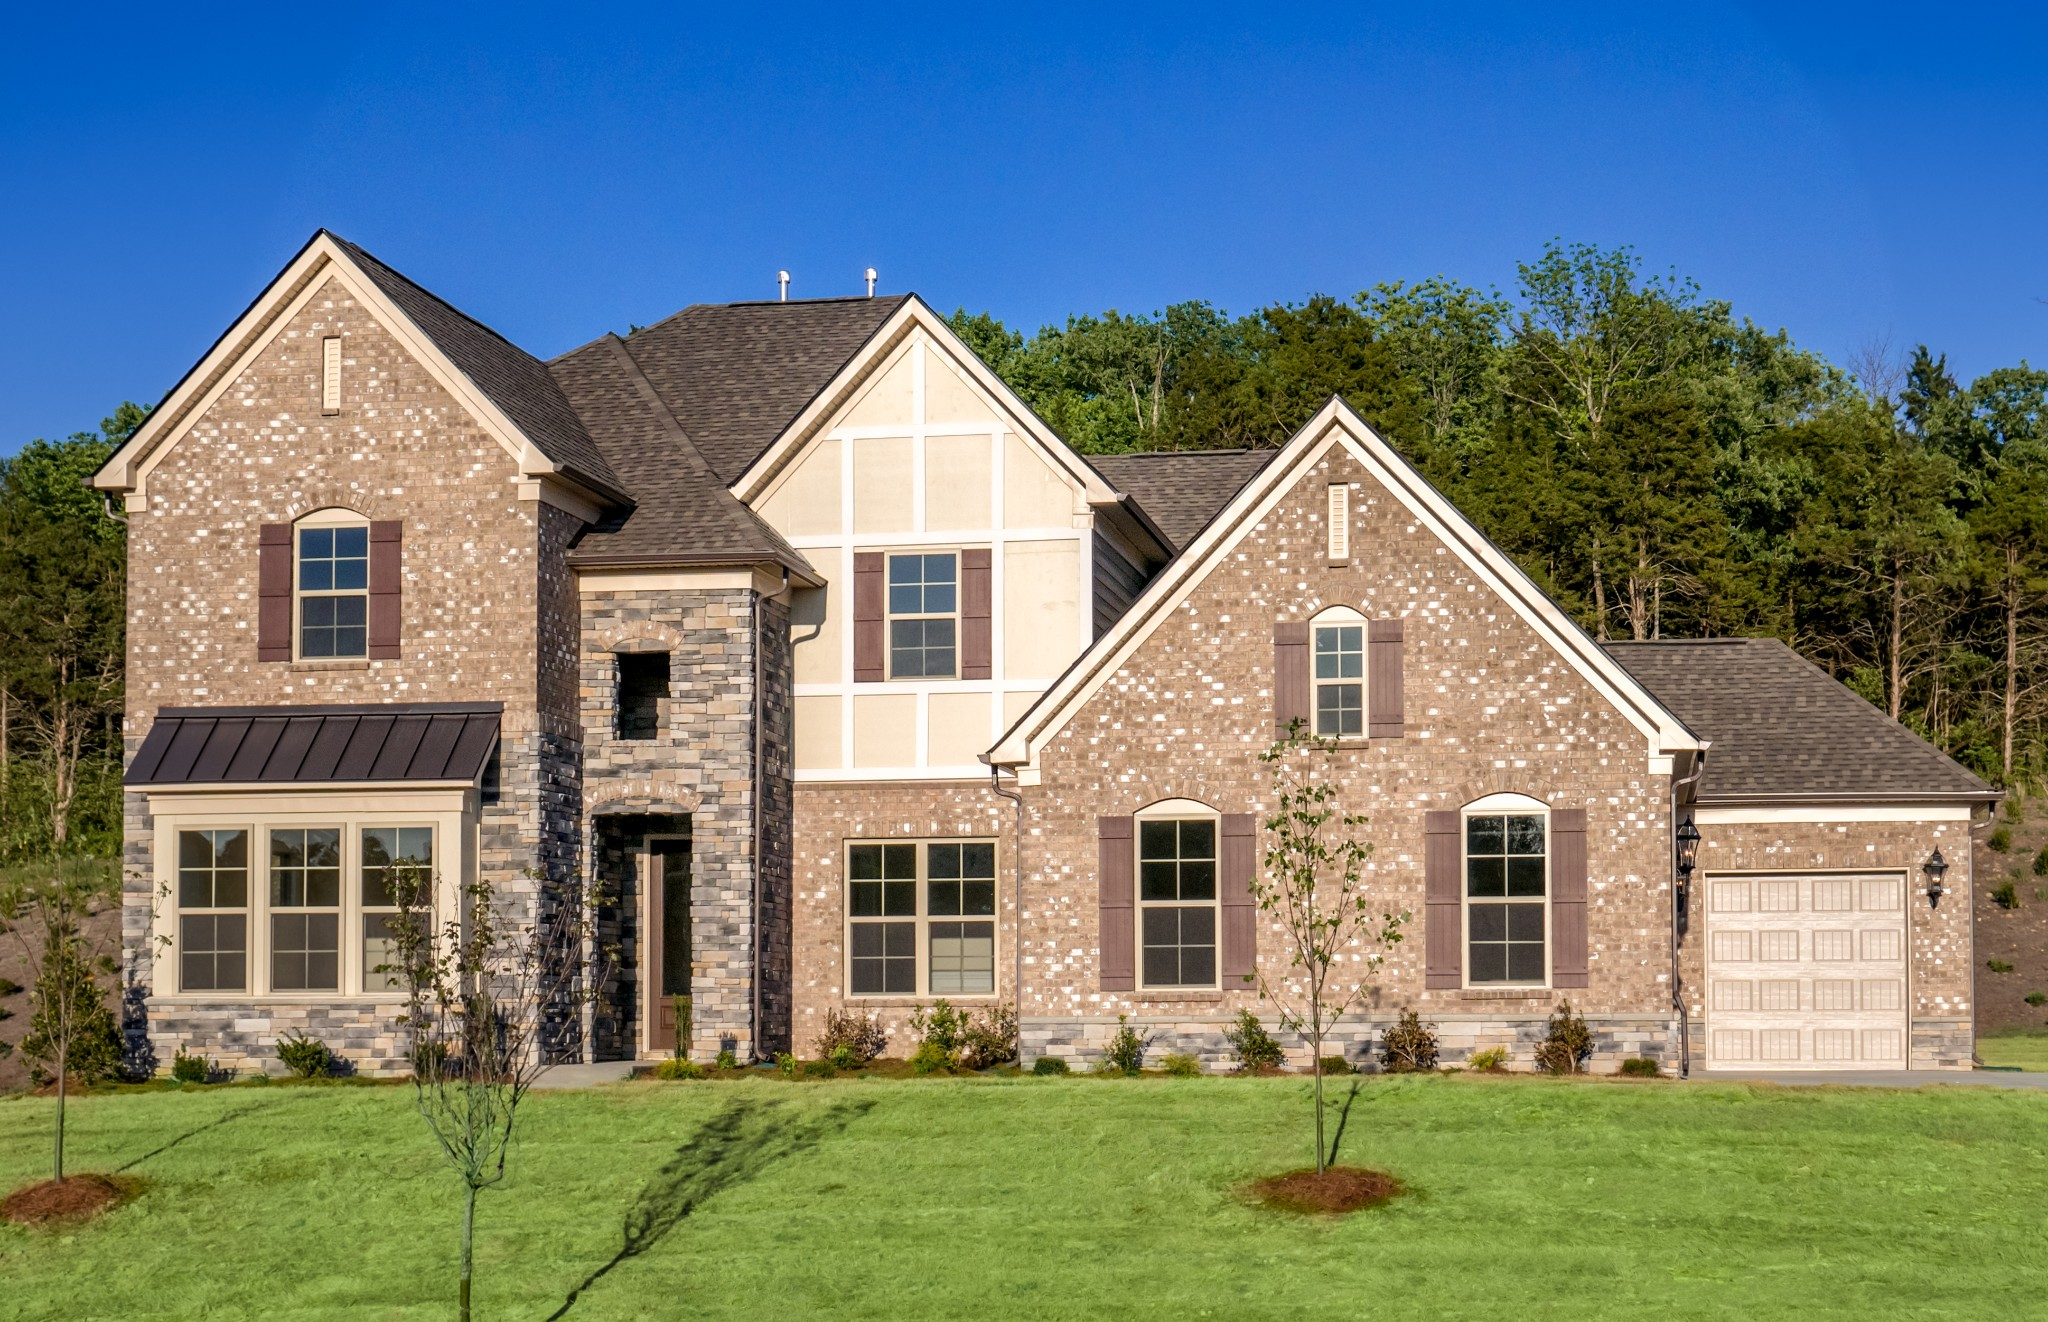 Woodfield floor plan. One of 5 floor plans offered in Taramore. Price includes covered porch, gourmet kitchen, grand master closet, and upgraded owner's bath.